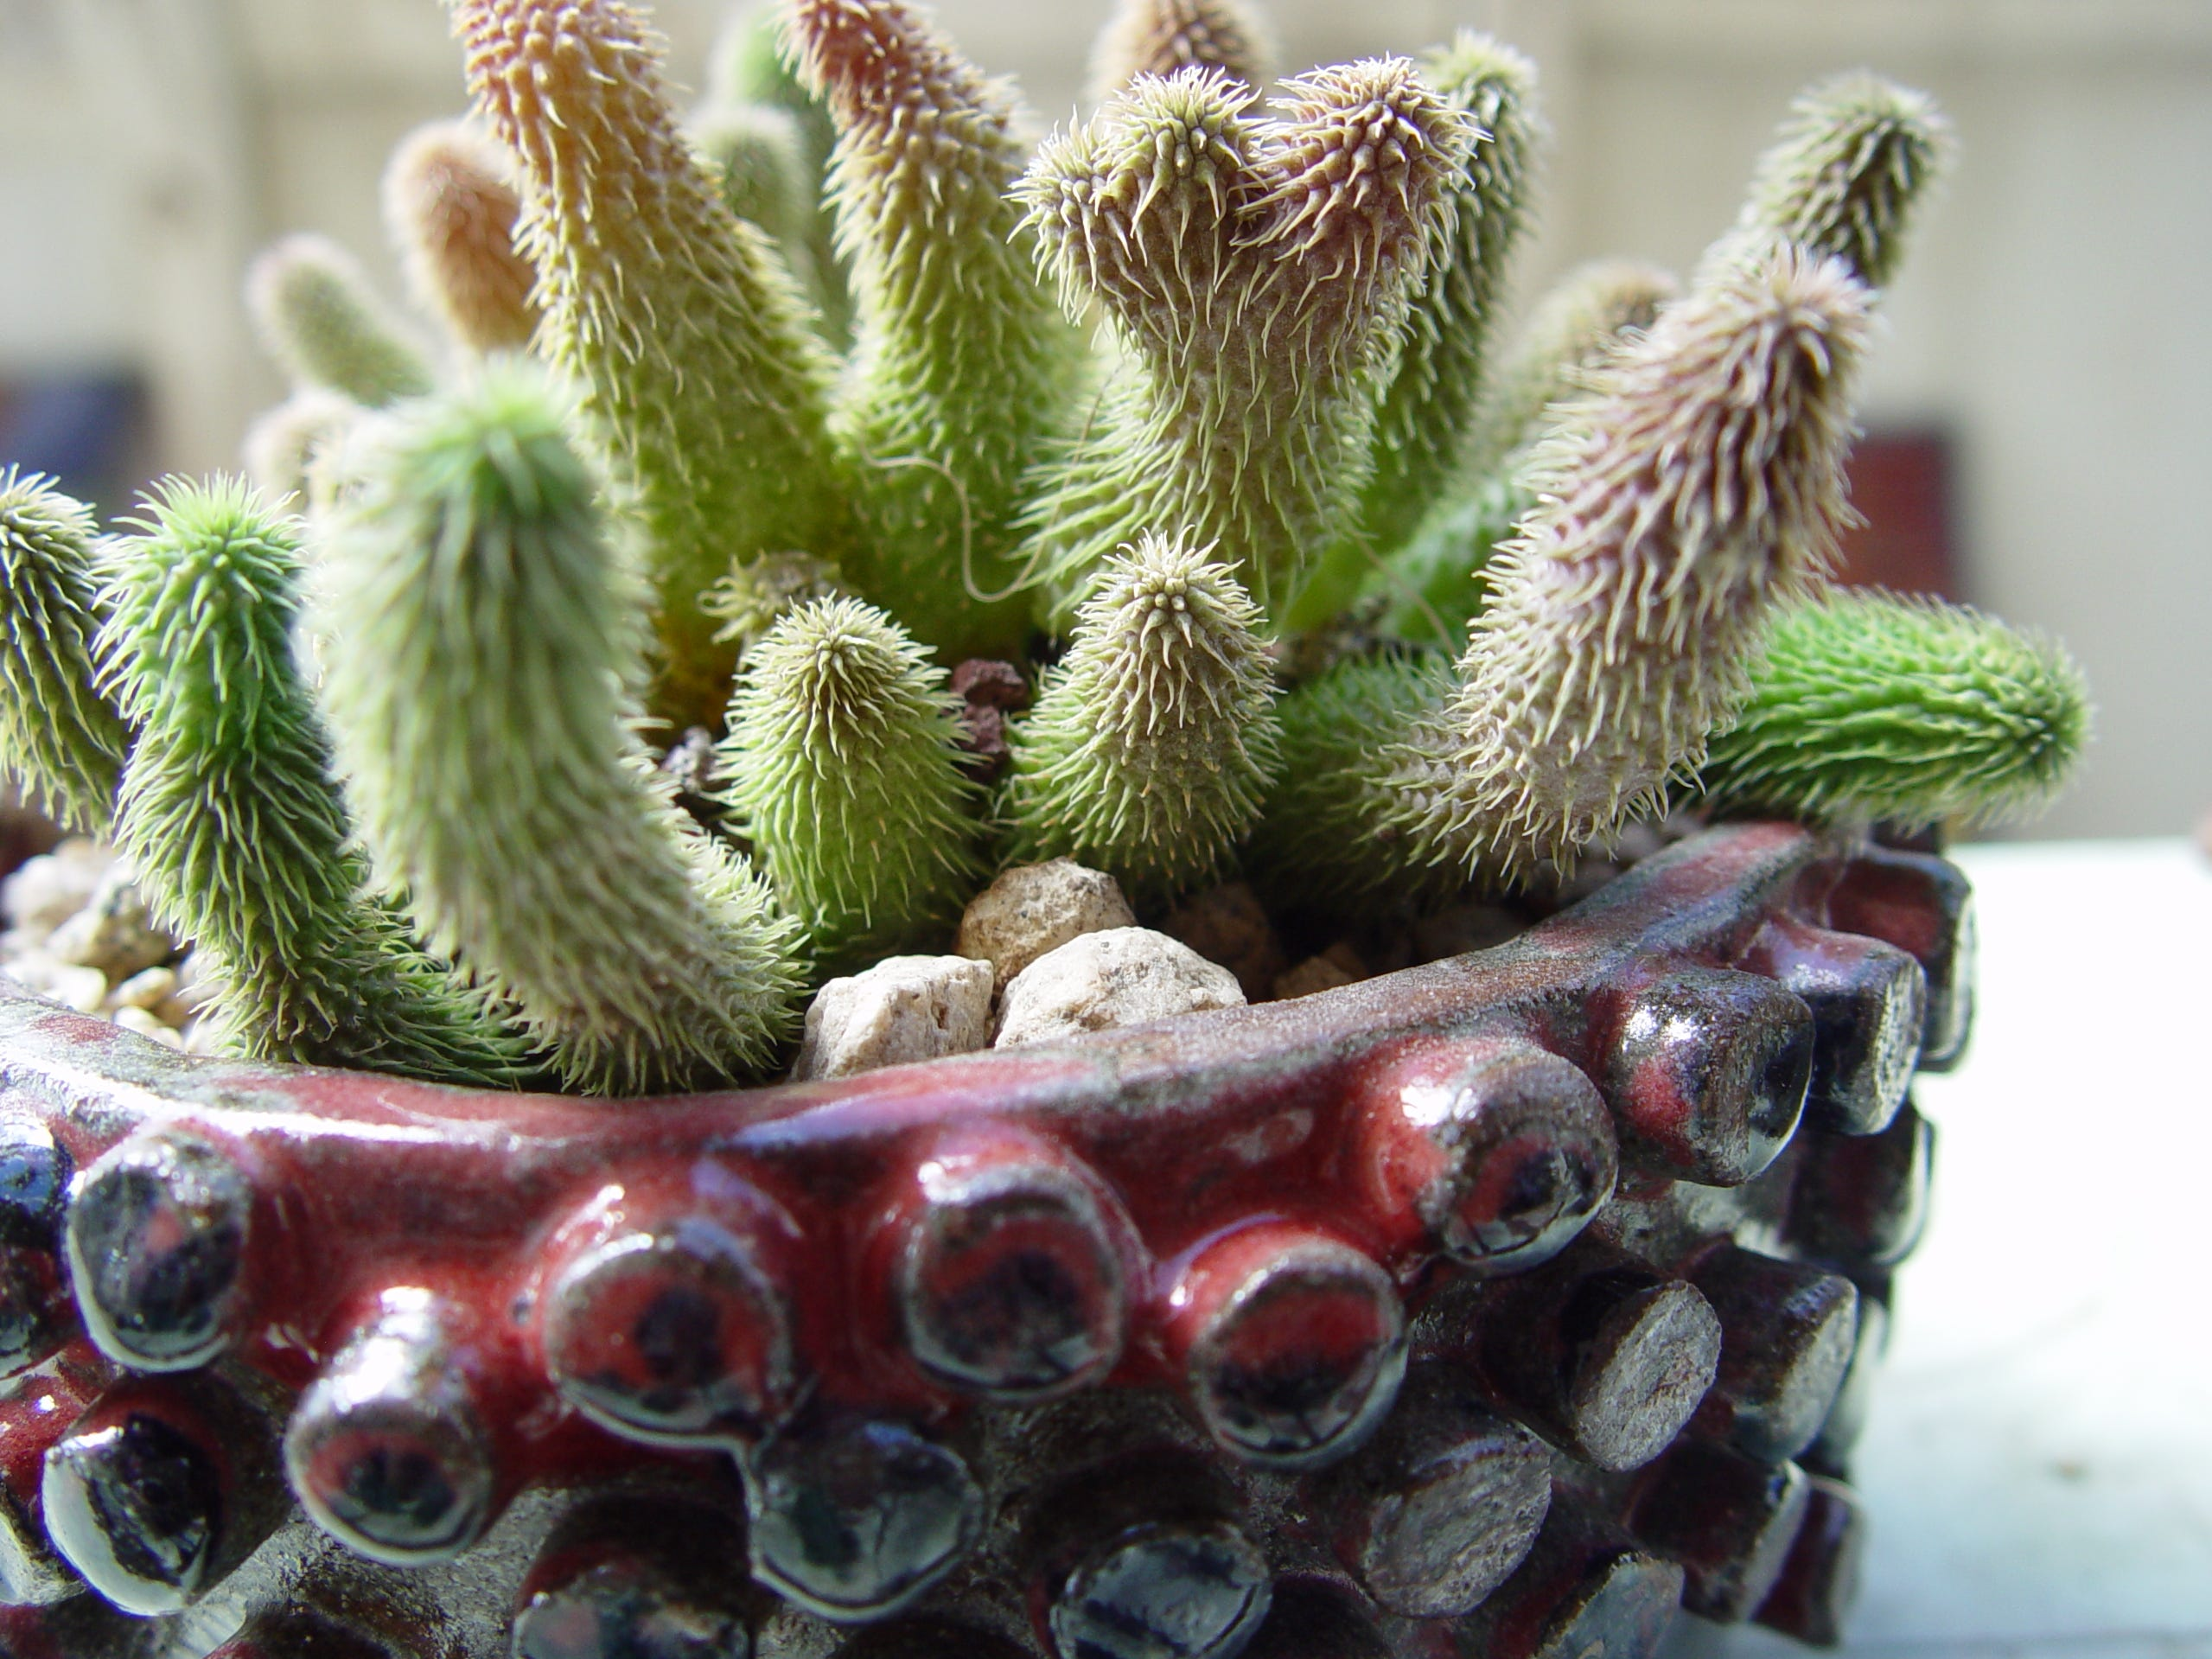 Tiny carrion flowers dot this species in spring and fall in this coordinated handmade art pot.